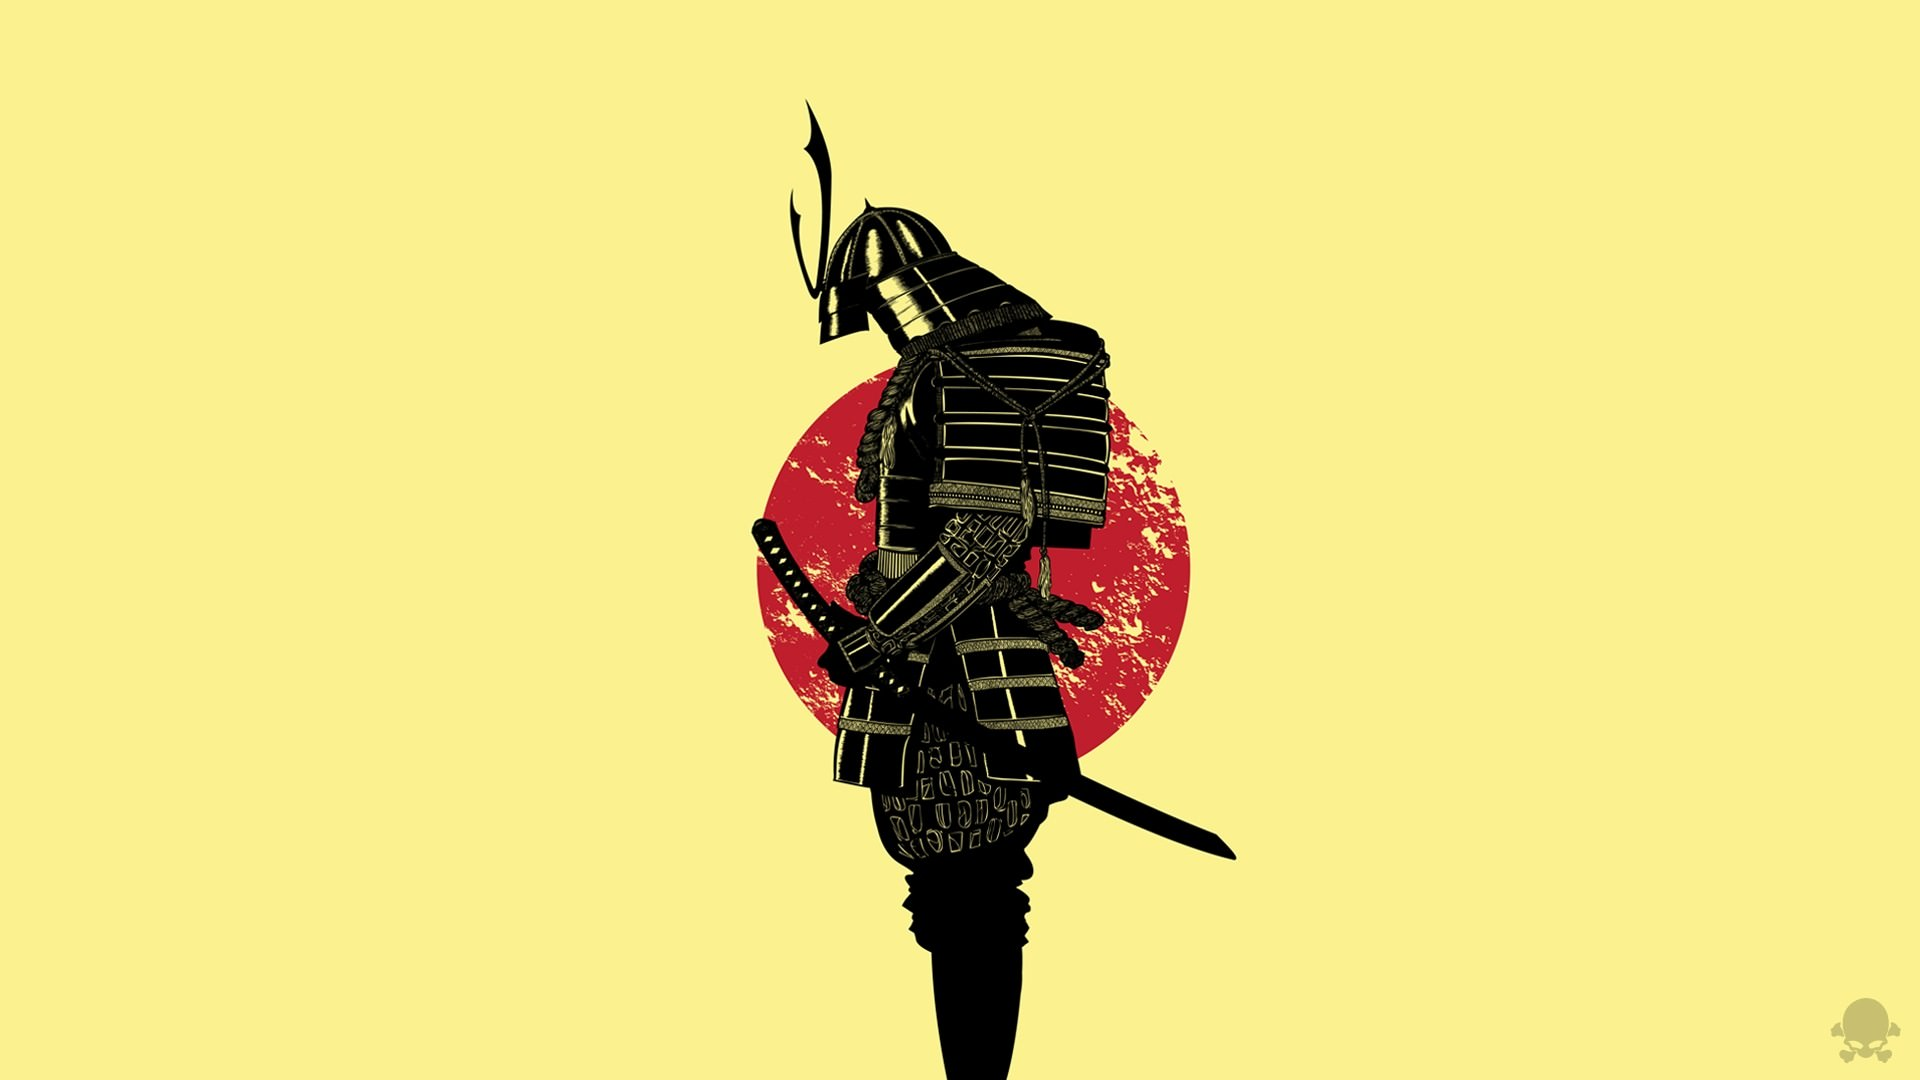 Free Download Black Samurai Warrior Wallpaper Digitalartio